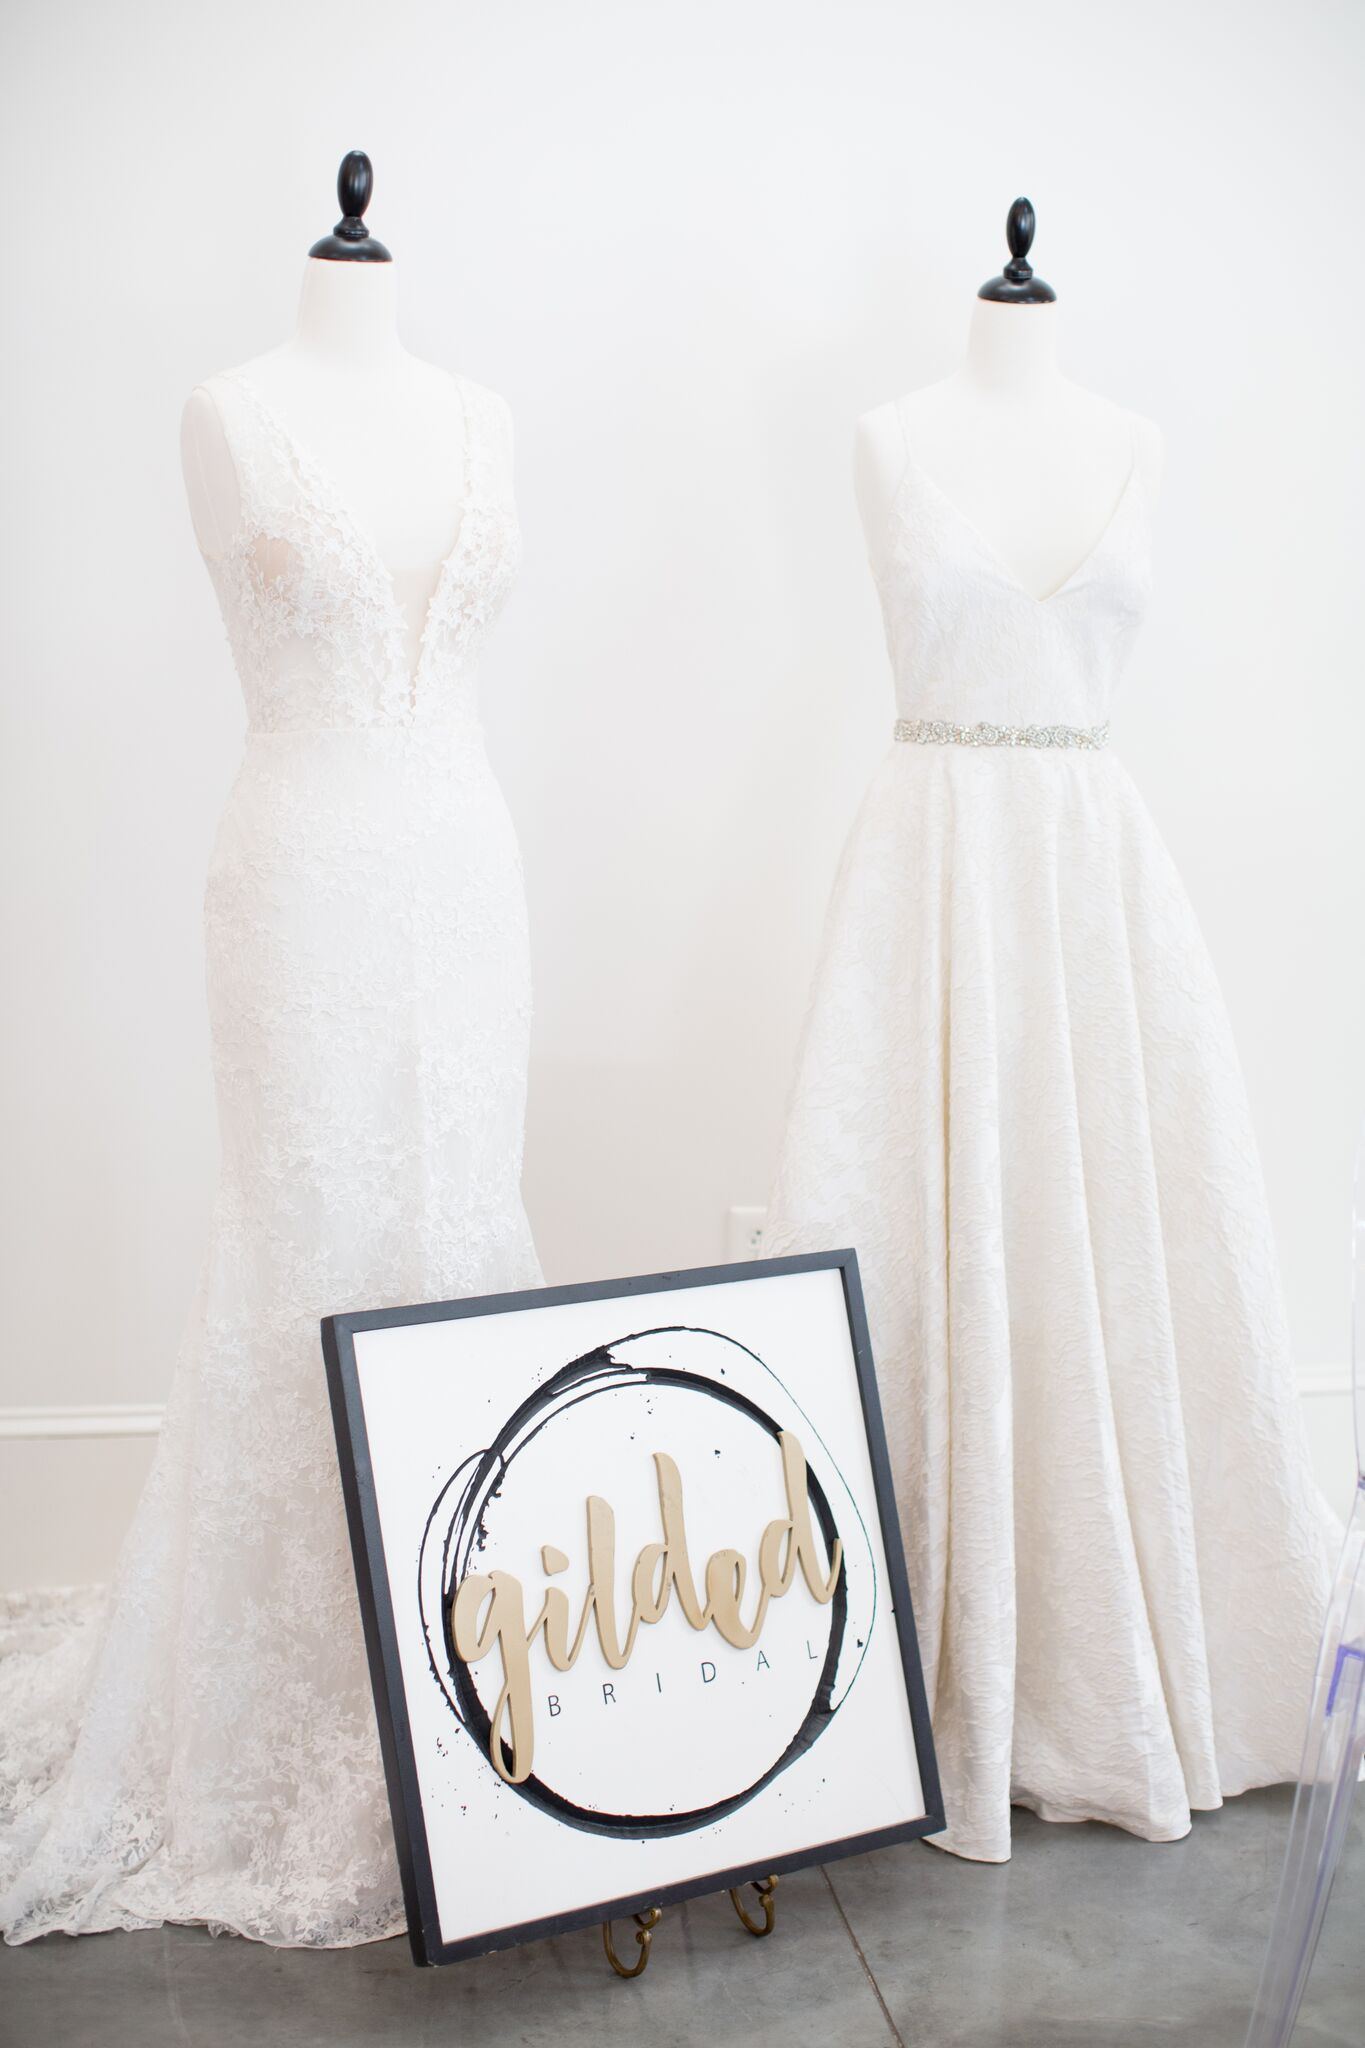 EVENTS BY   LA FETE    KATHERINE MILES JONES PHOTOGRAPHY    GILDED   BRIDAL    PARTY REFLECTIONS